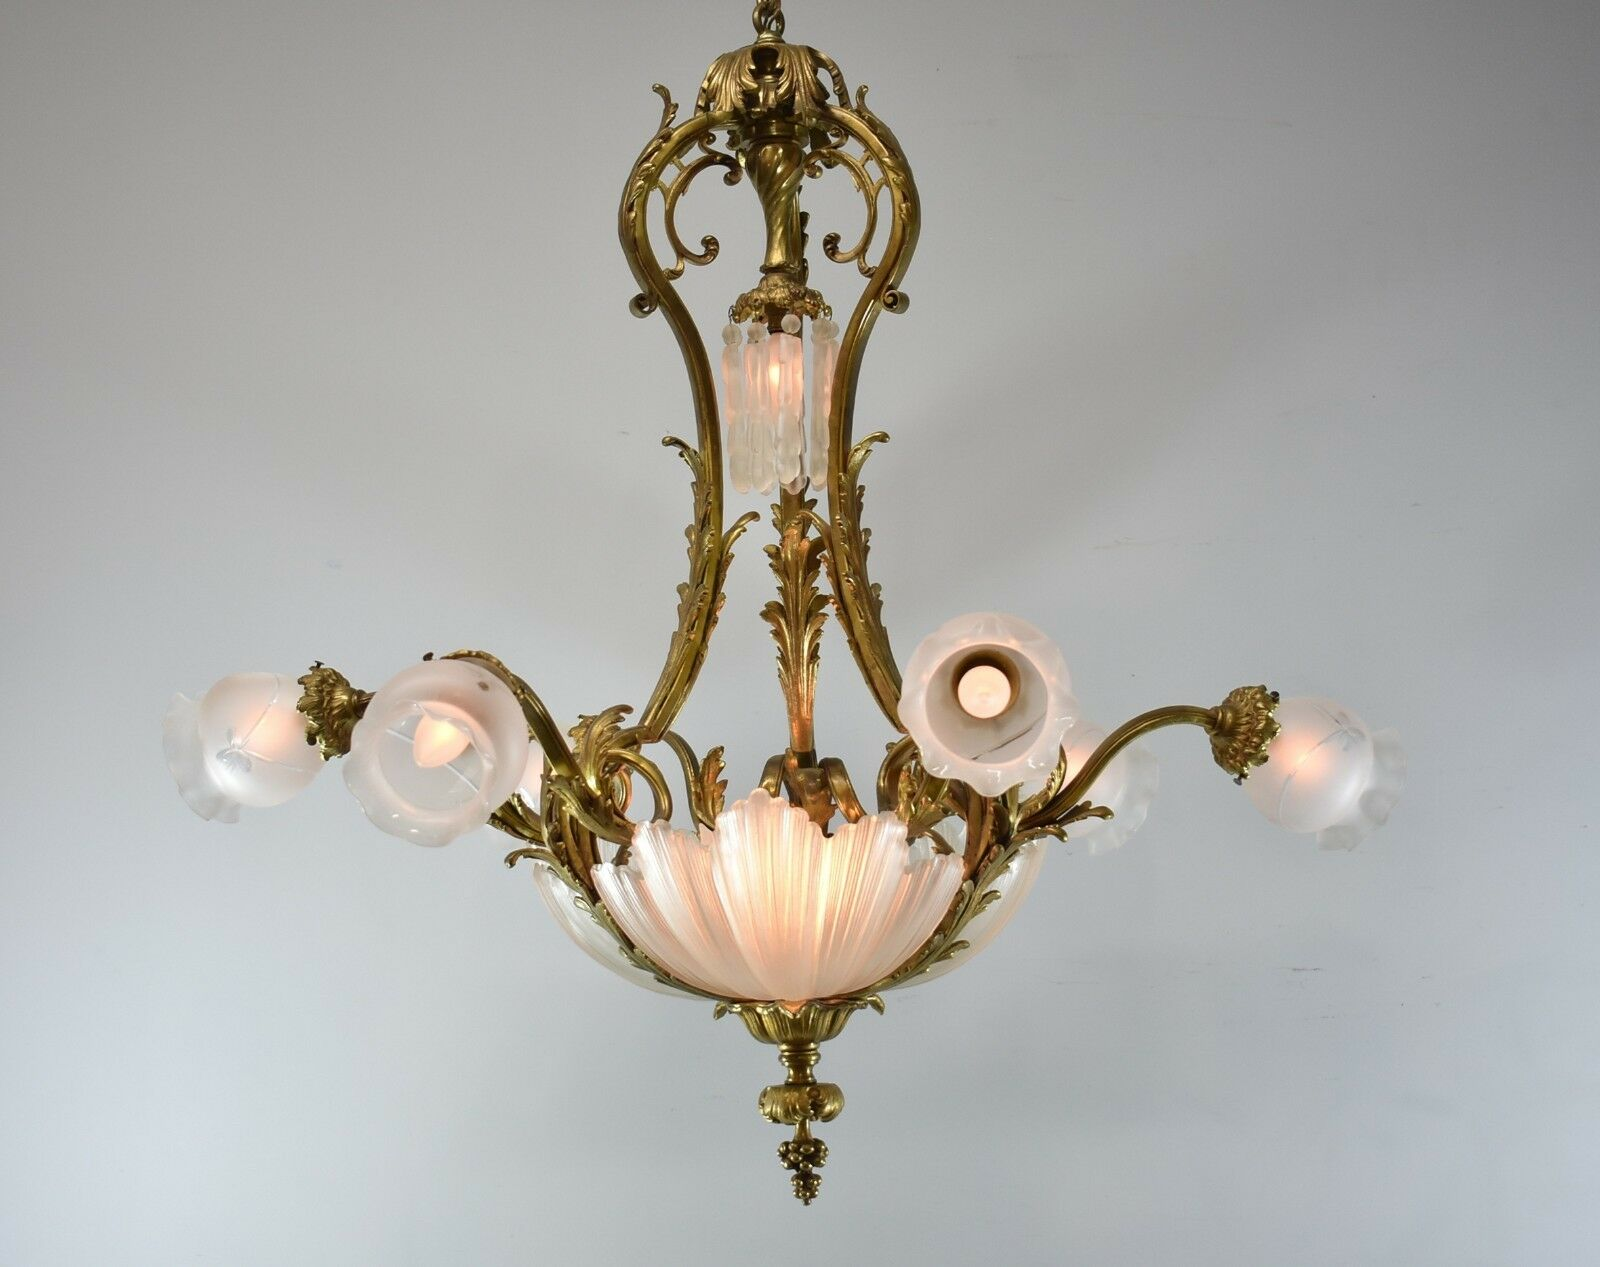 ... Turn-of-the-Century-Bronze-Rococo-Style-Six- ... & Turn of the Century Bronze Rococo Style Six Arm Chandelier Light ... azcodes.com